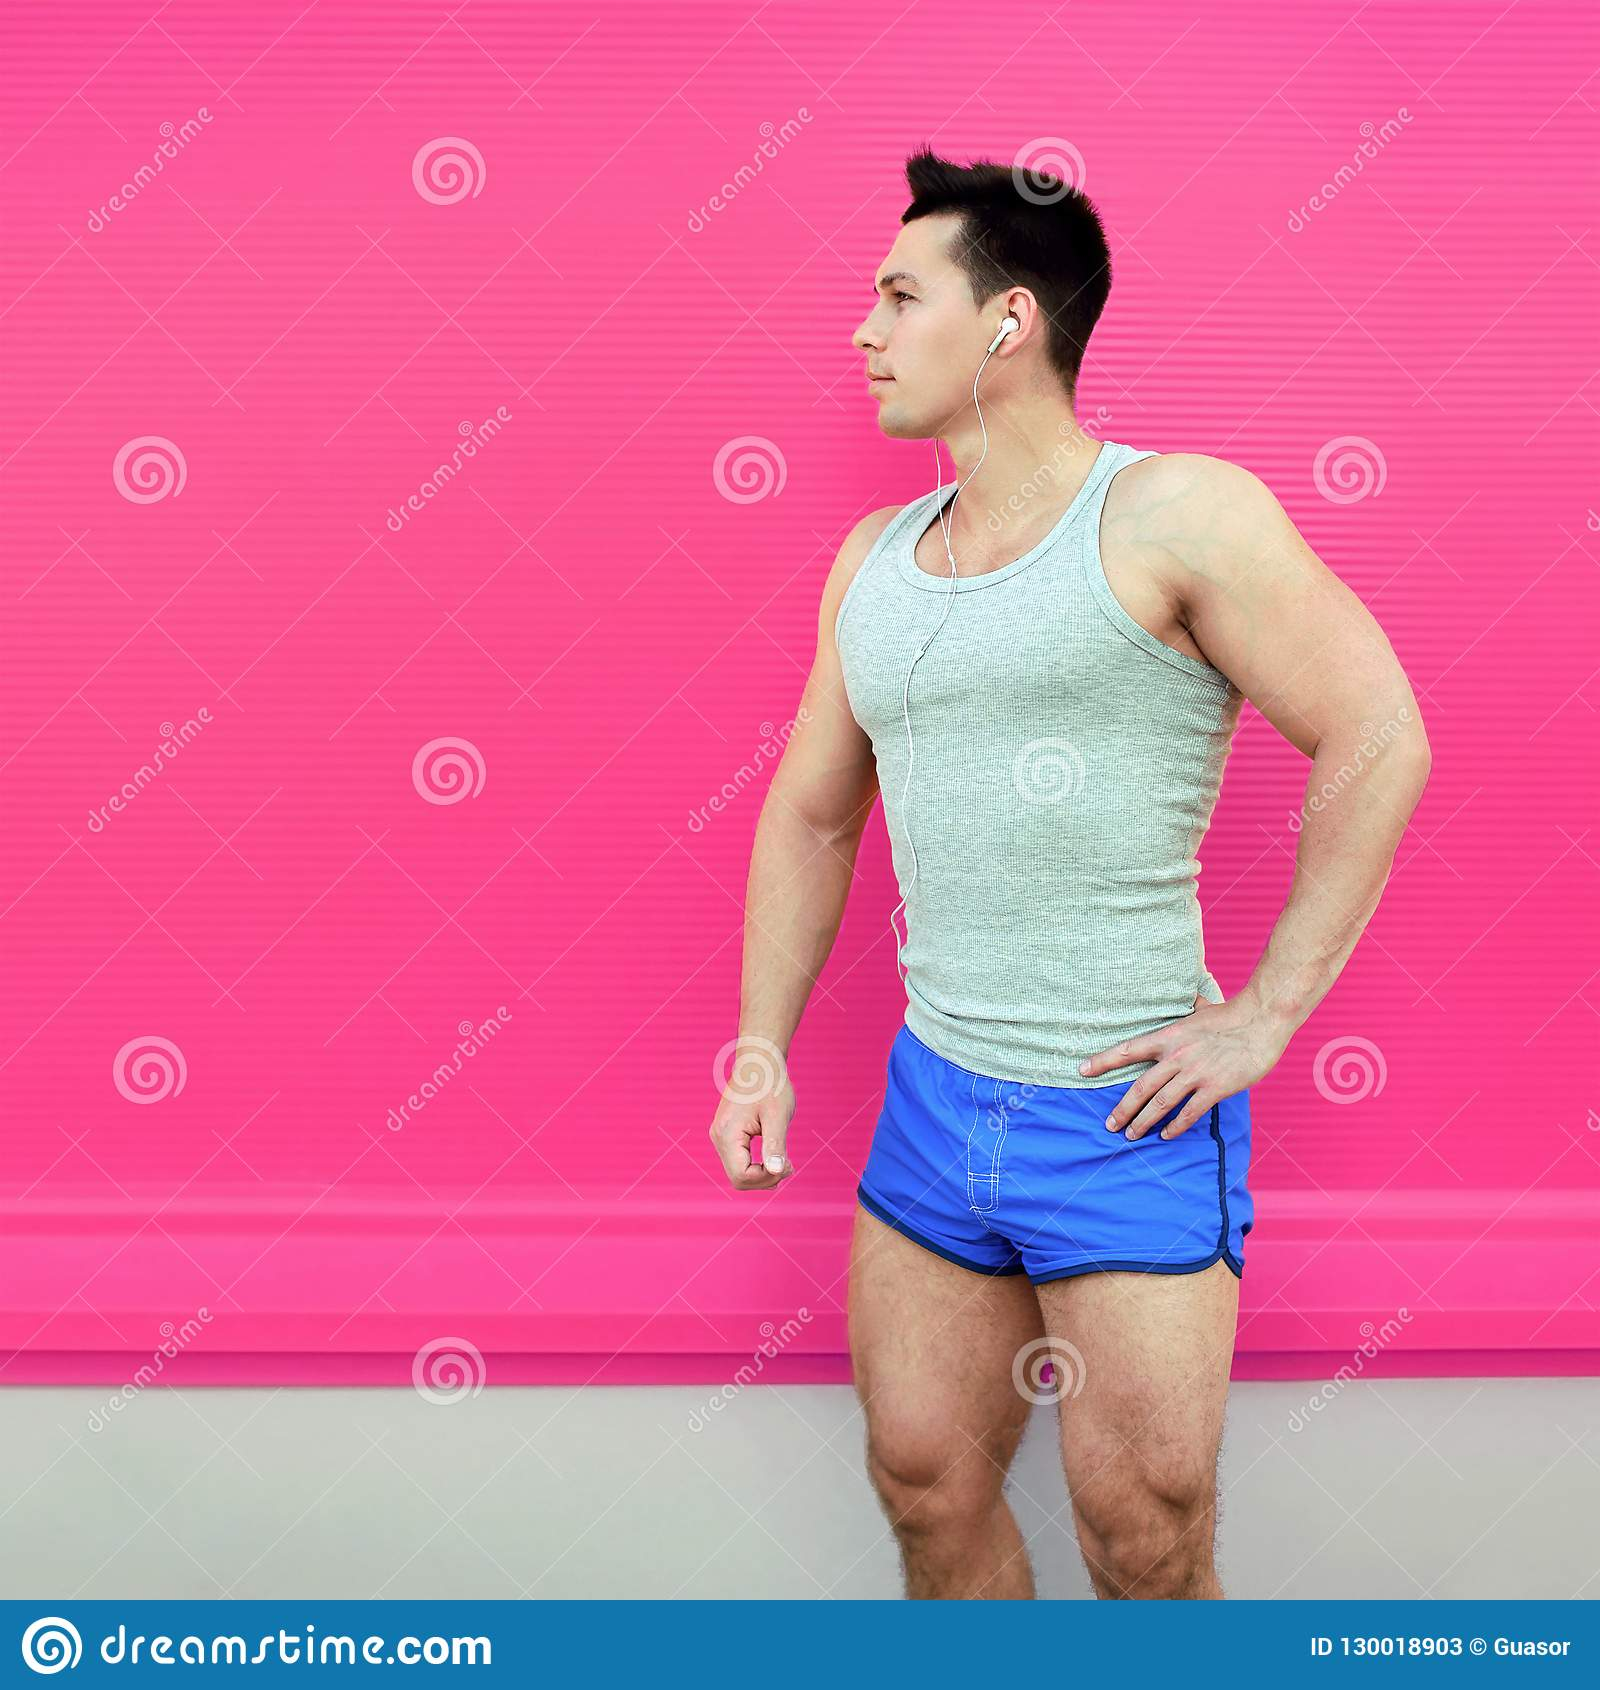 Sportsman stands in shorts on colorful pink wall background